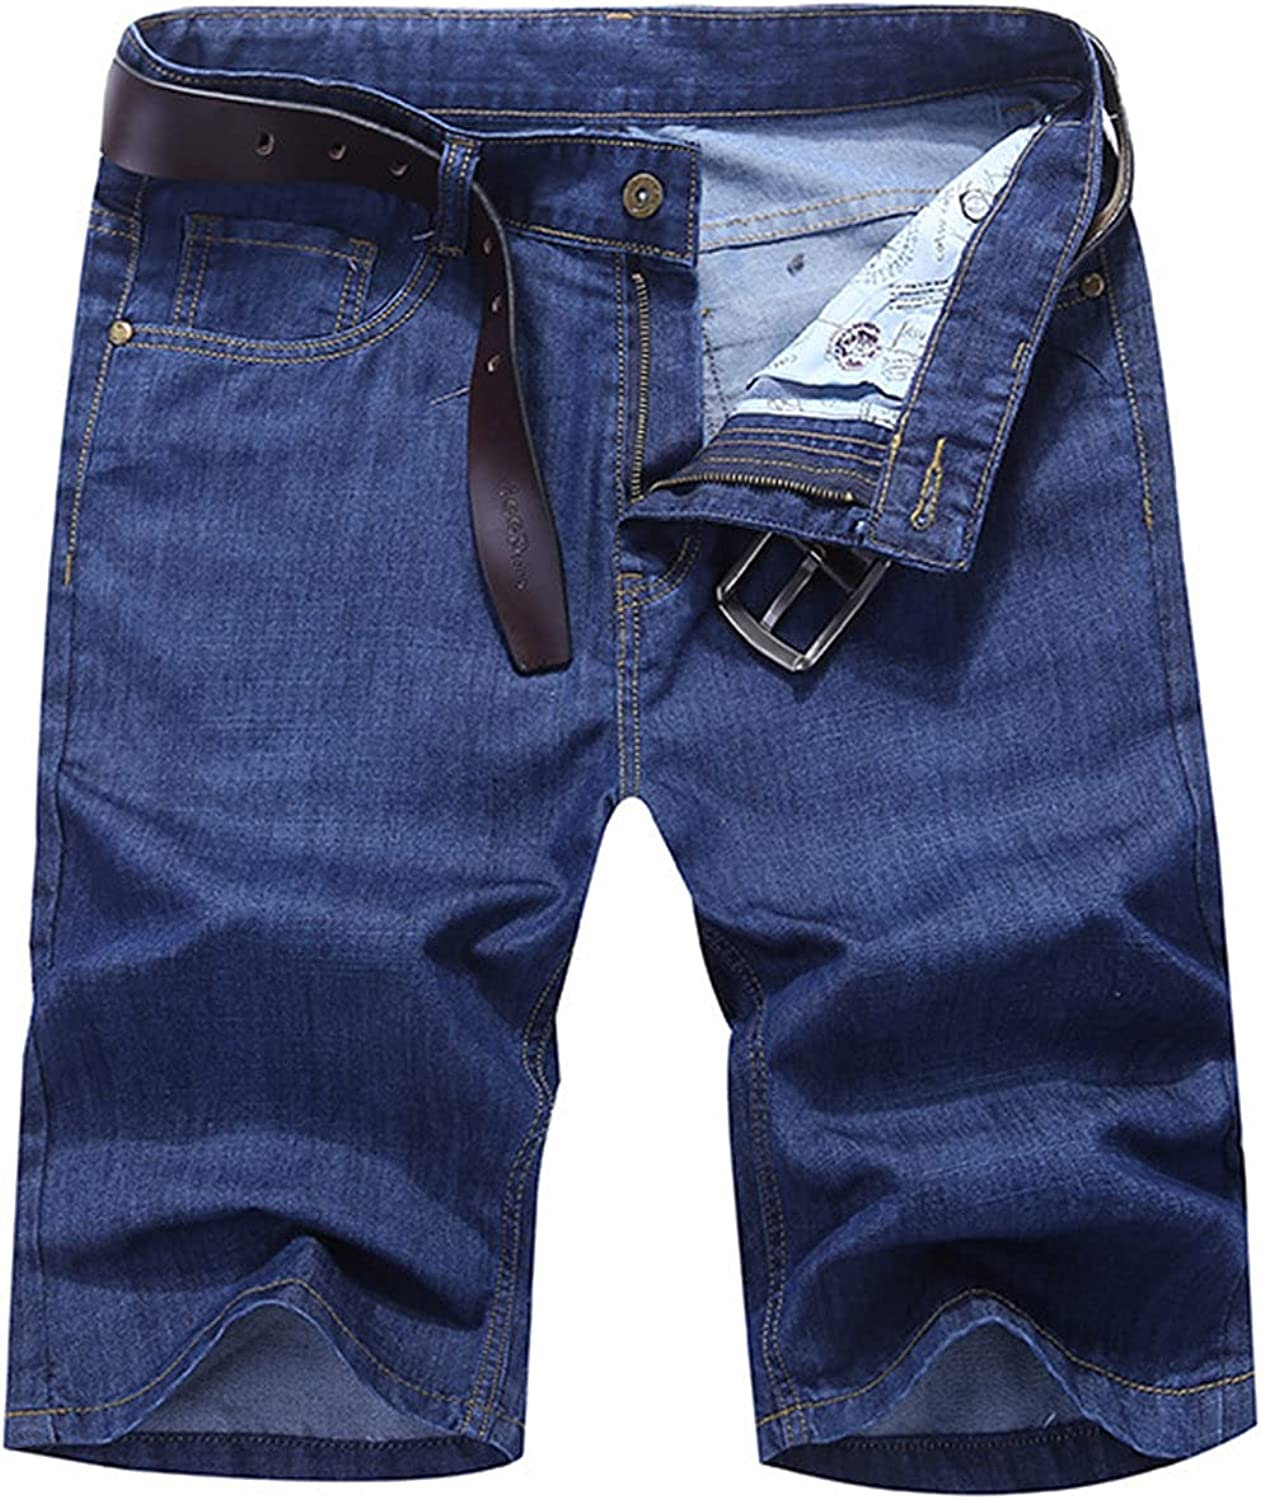 Men's Casual Loose Straight Denim Shorts Comfy Relaxed Fashion Denims Short Classic Slim Washed Jean Short-pant